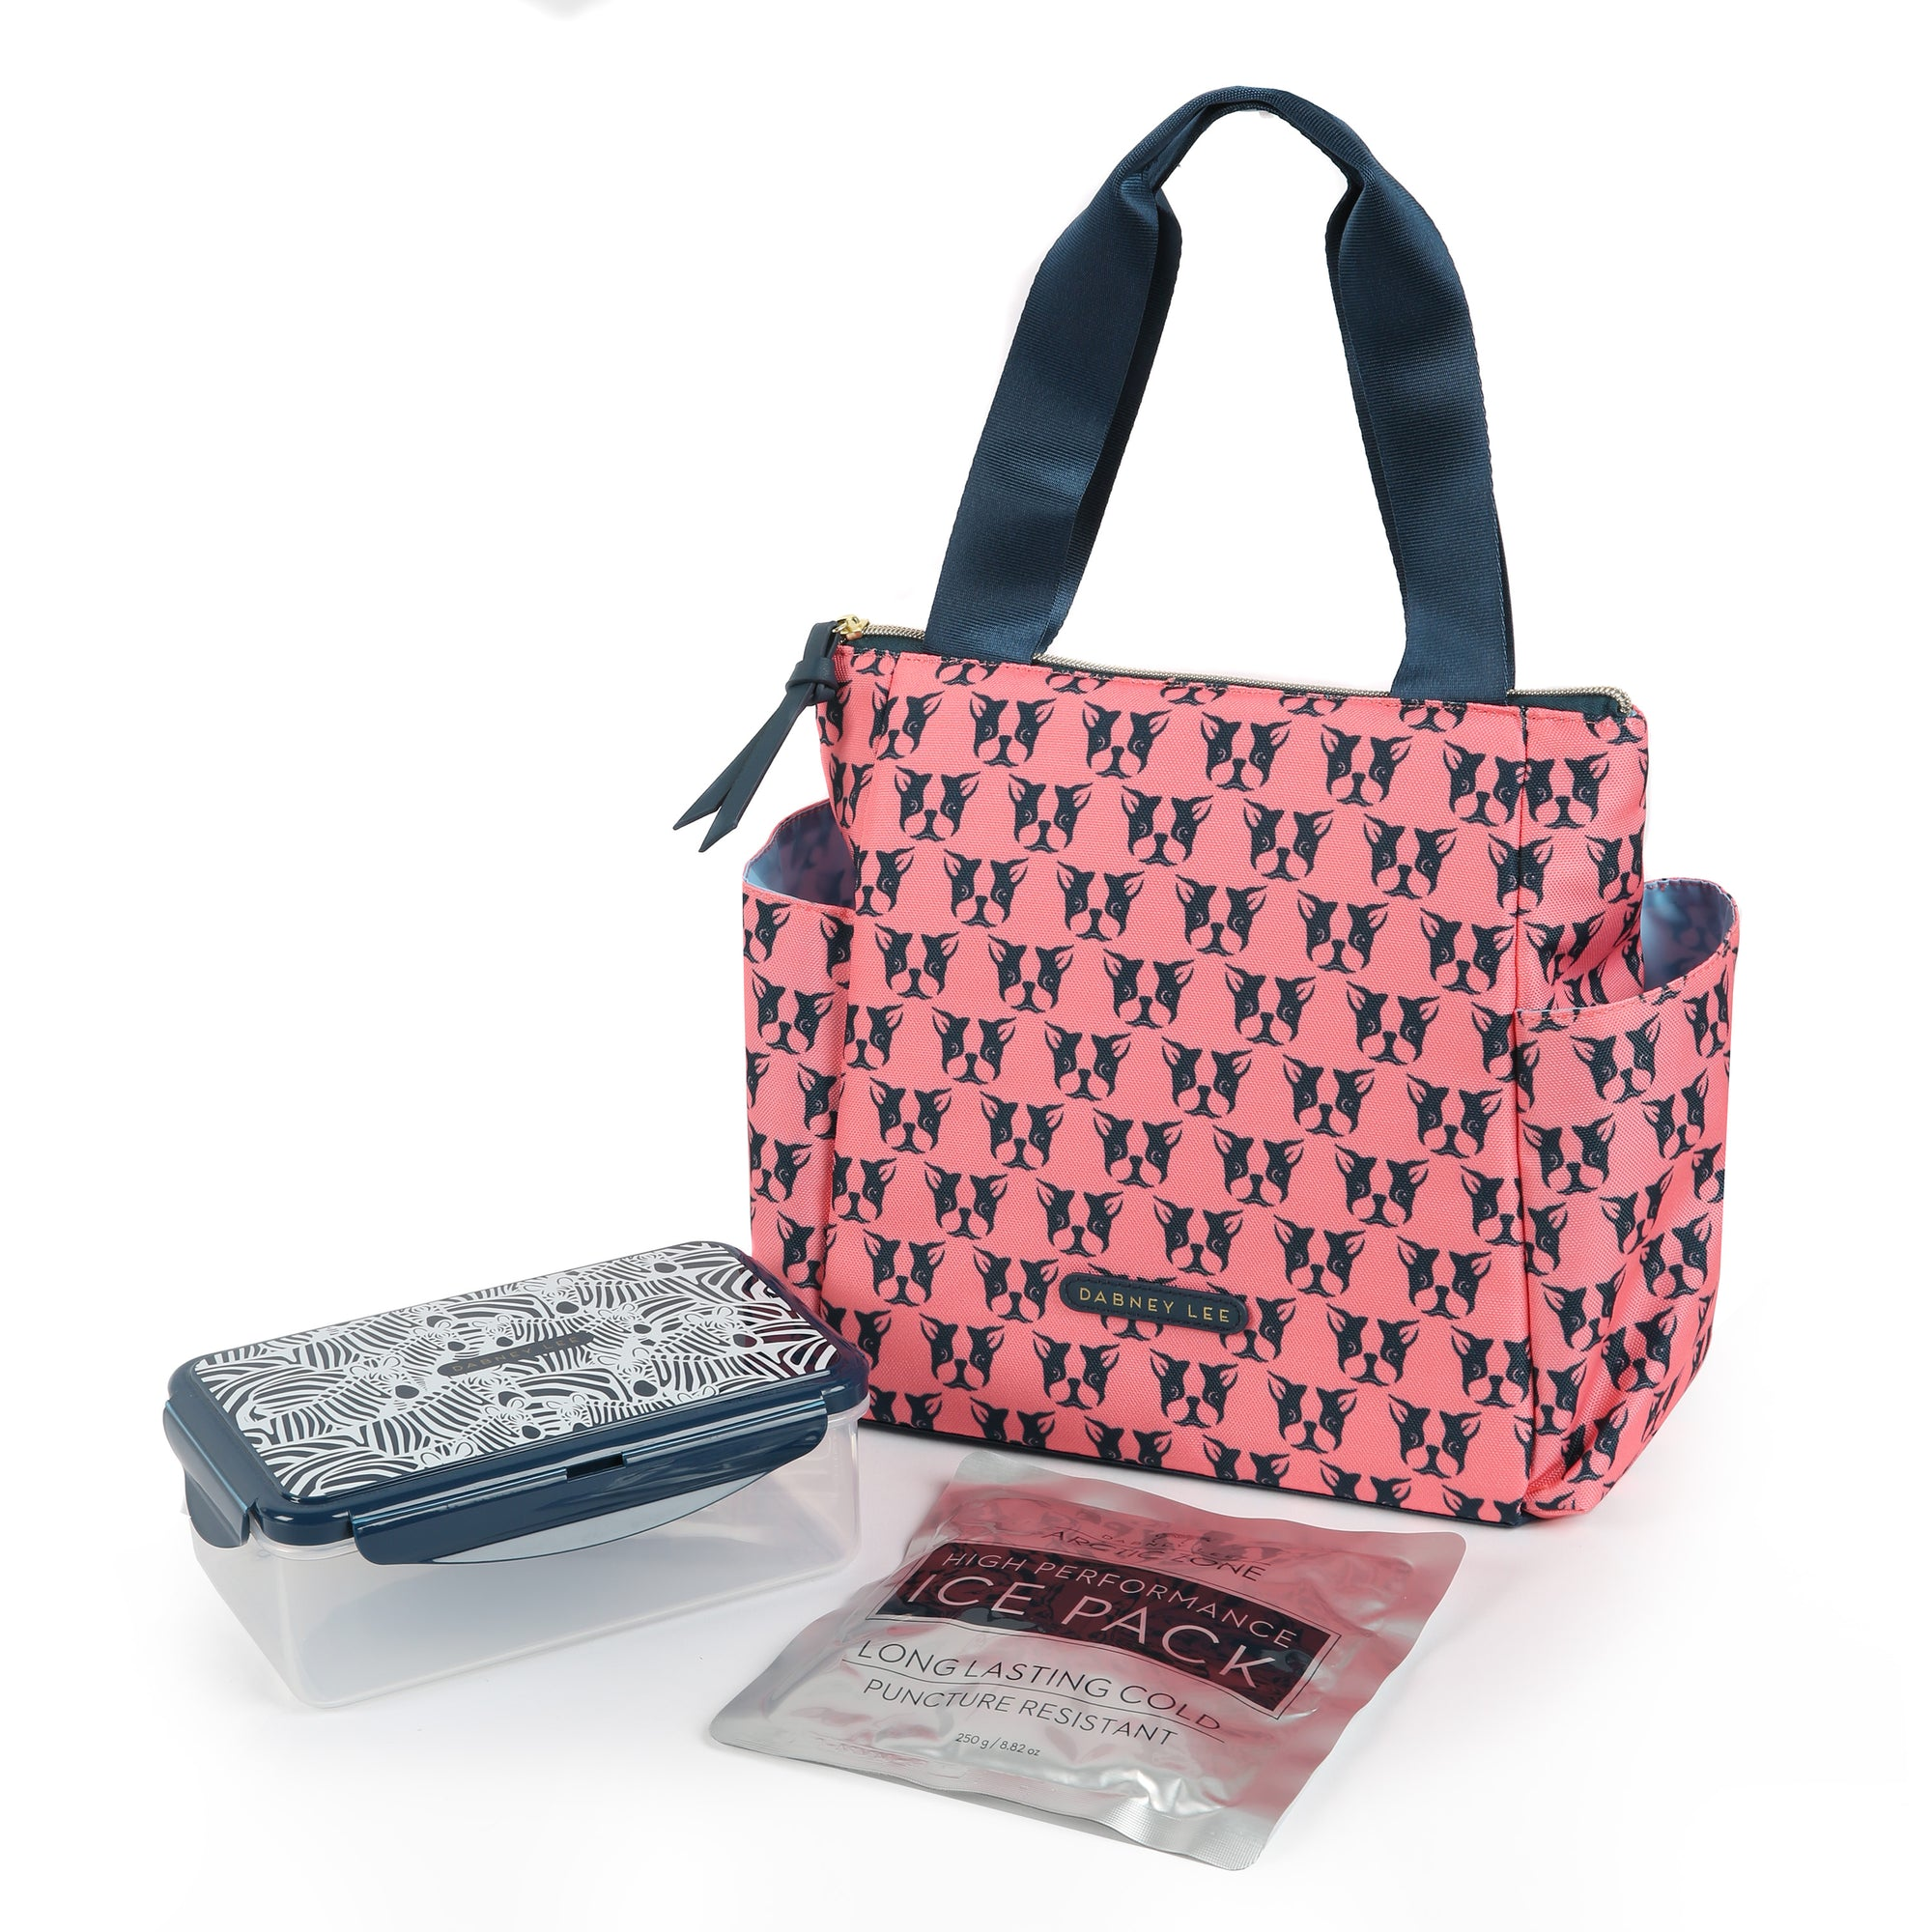 Arctic Zone® Dabney Lee Karina Tote - Polly Coral - Front, closed with container and ice pack